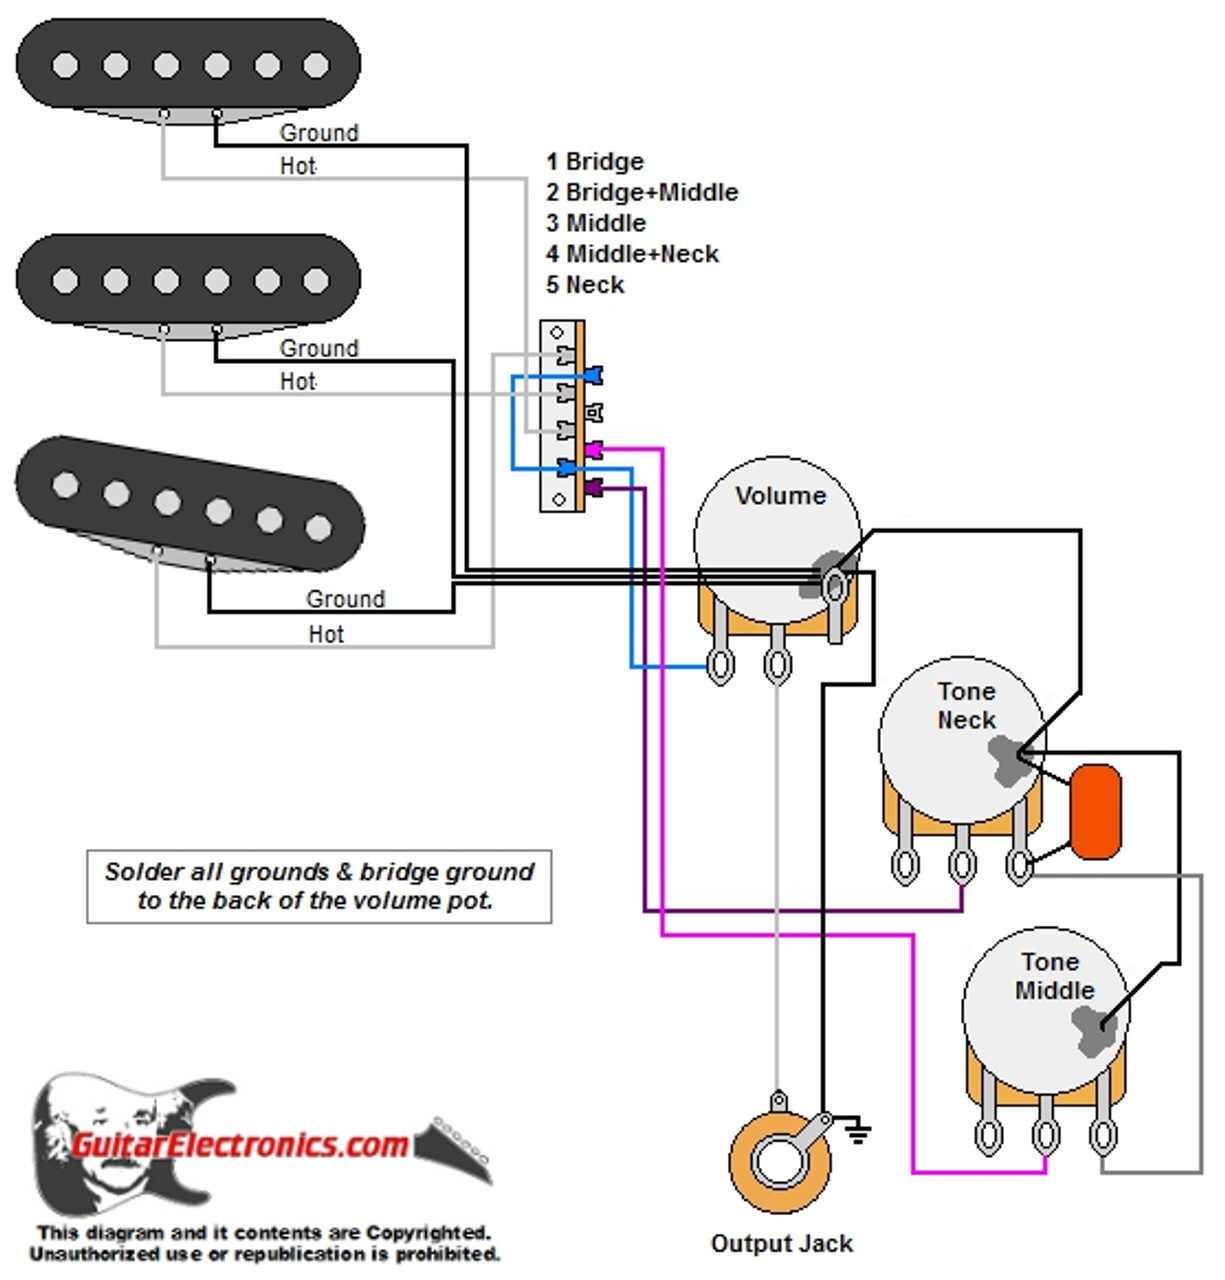 stratocaster output jack wiring wiring library diagram boxfender strat guitar output jack wiring data wiring diagrams strat switch wiring stratocaster output jack wiring